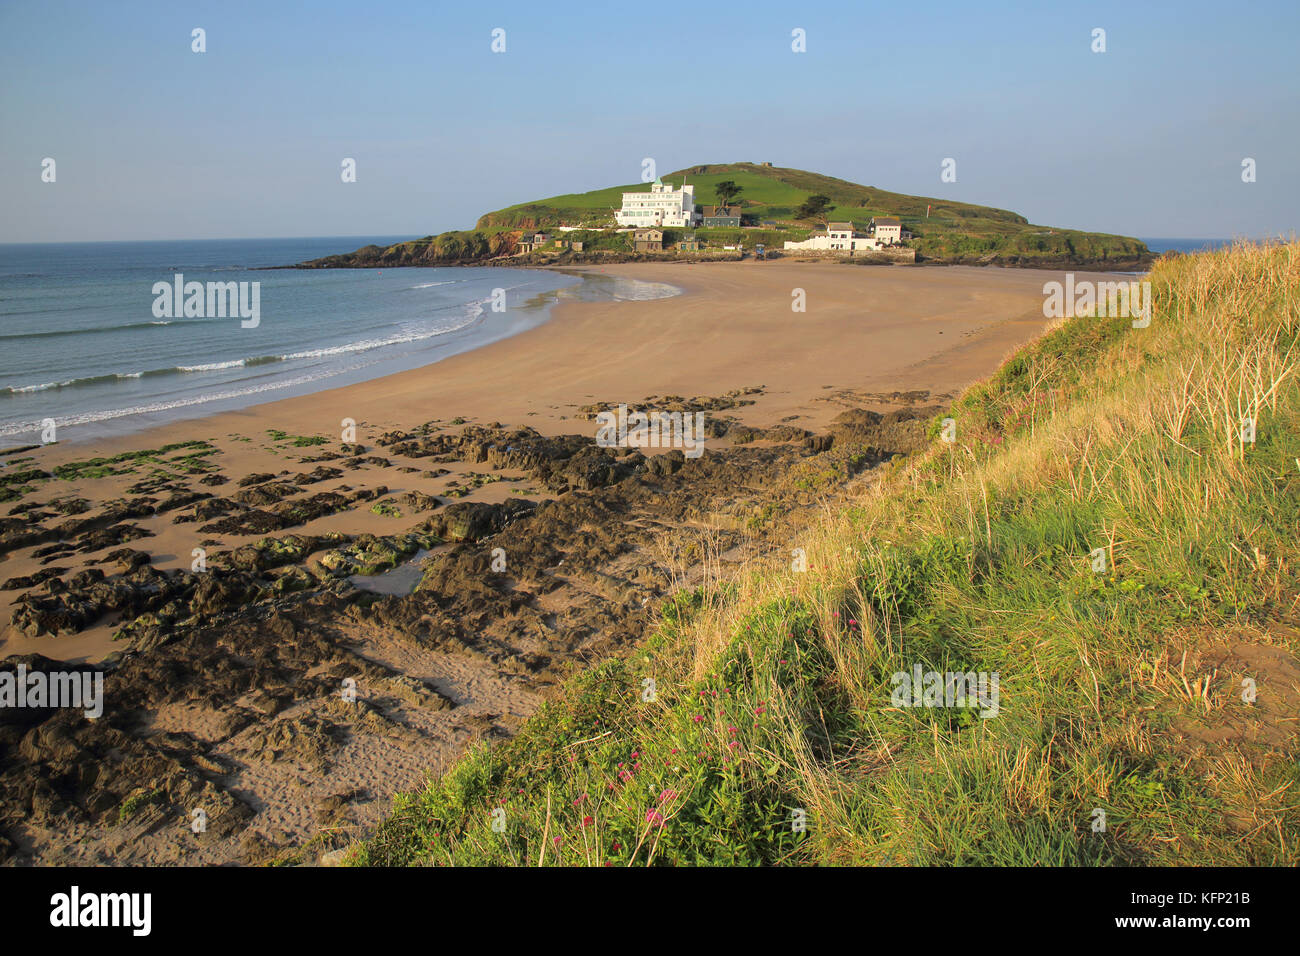 burgh island at bigbury on the south devon coast - Stock Image